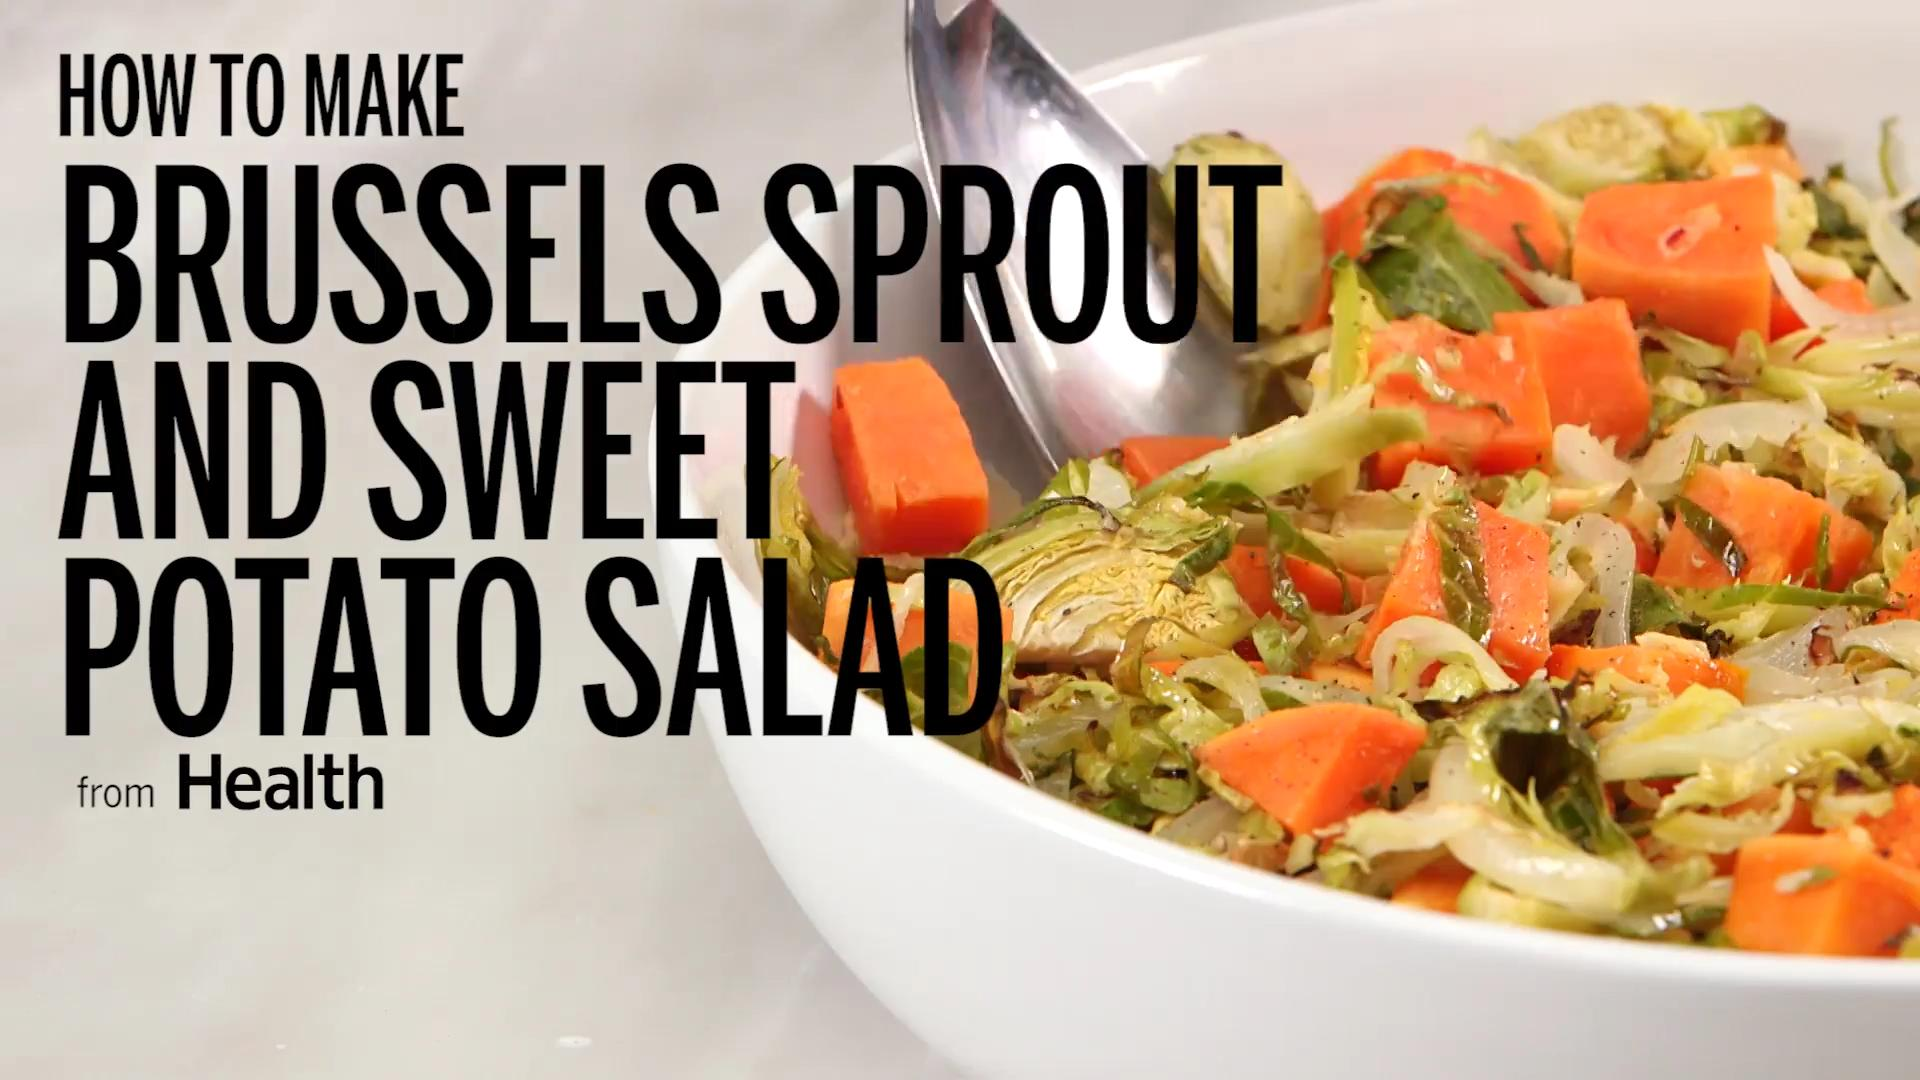 Brussels Sprout and Sweet Potato Salad